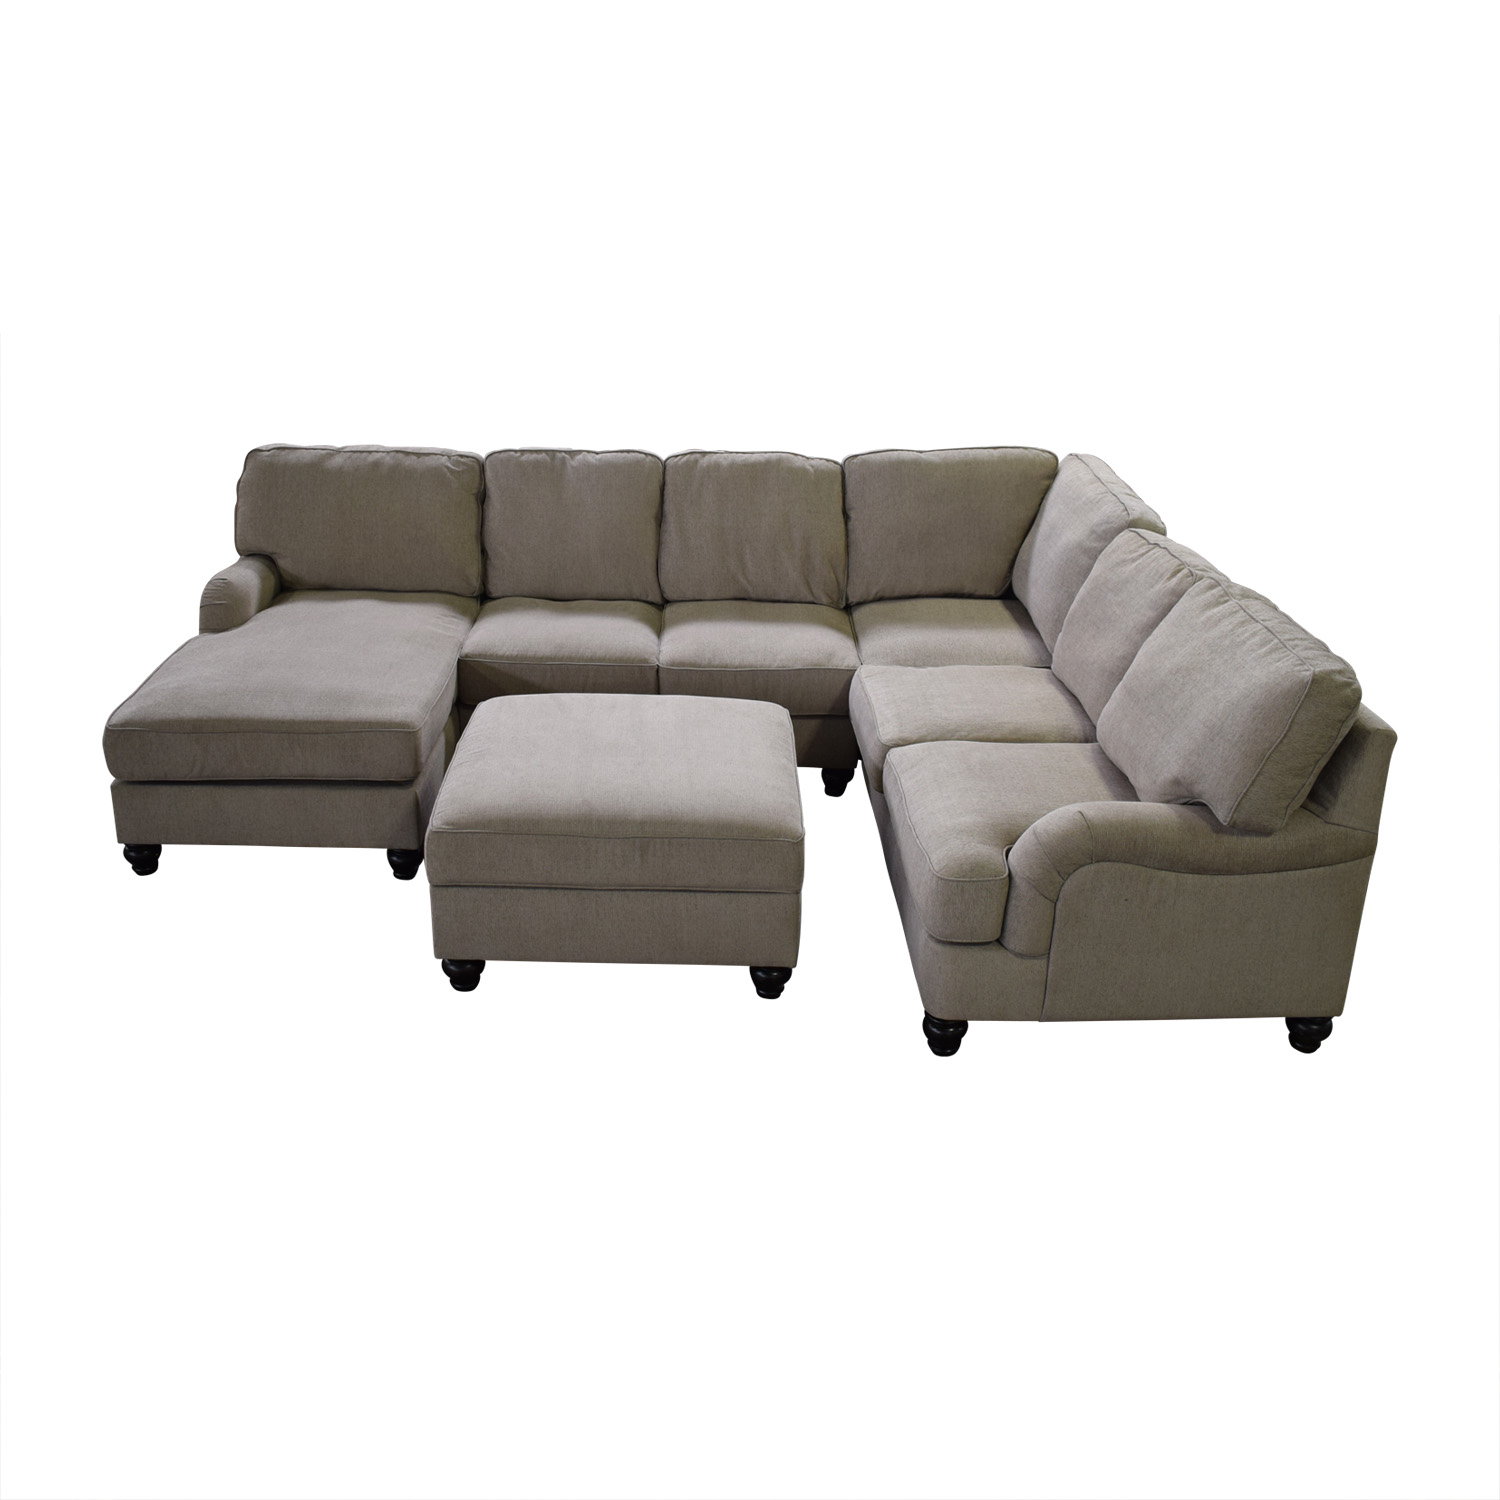 buy Ashley Furniture Chaise Sectional Sofa Ashley Furniture